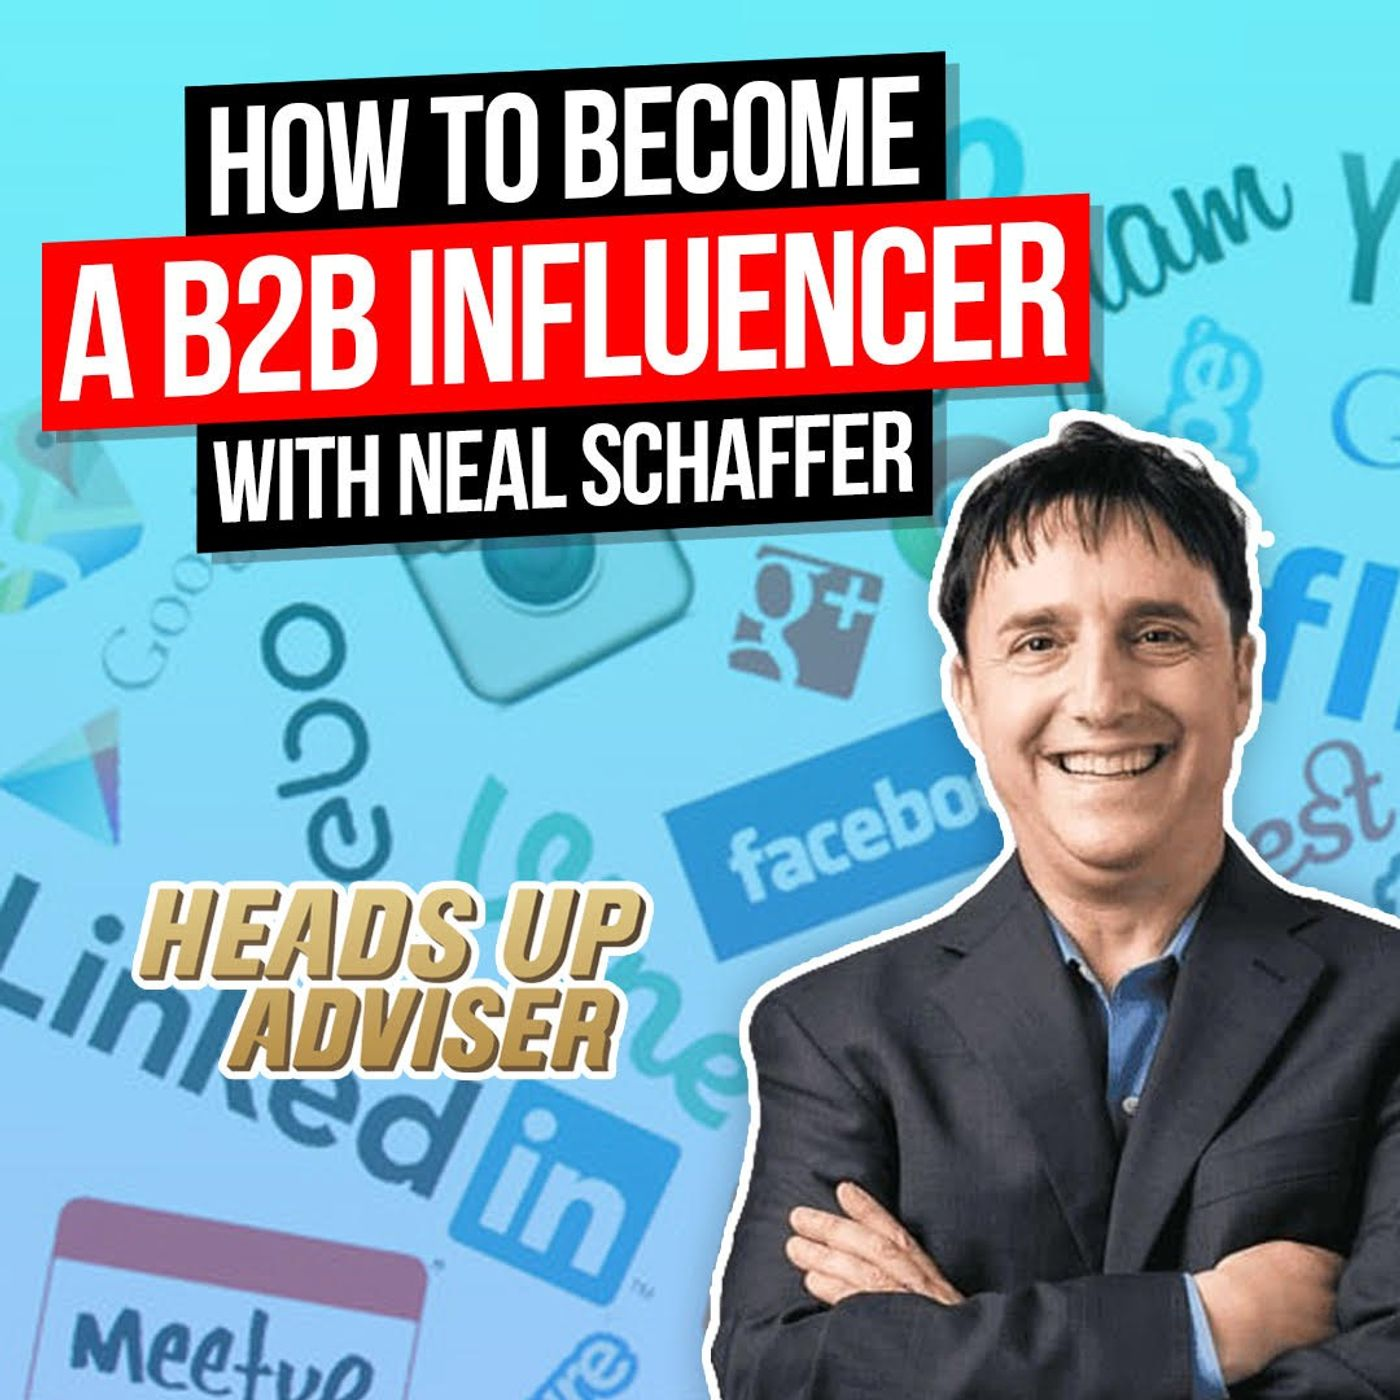 How To Become A B2B Influencer with Neal Schaffer